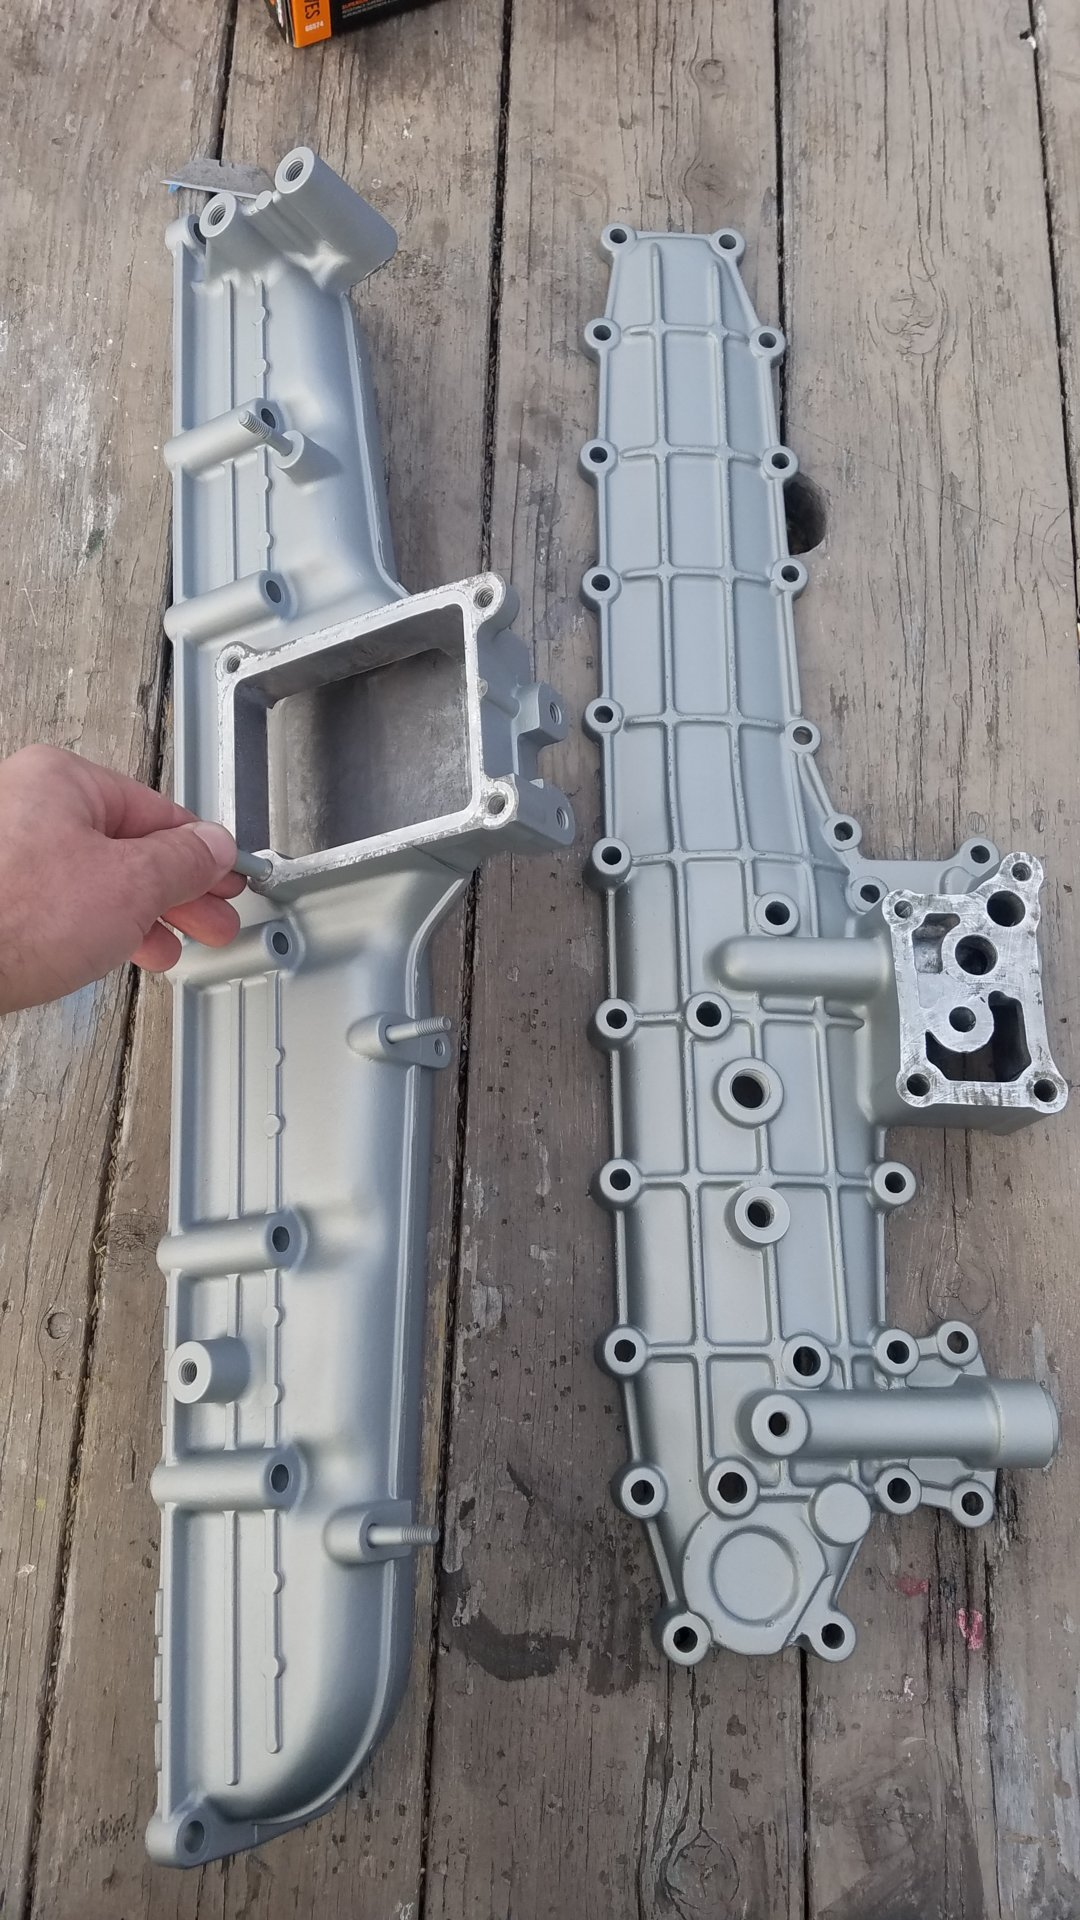 Builds - FJ60 12HT converted engine rebuild | Page 7 | IH8MUD Forum